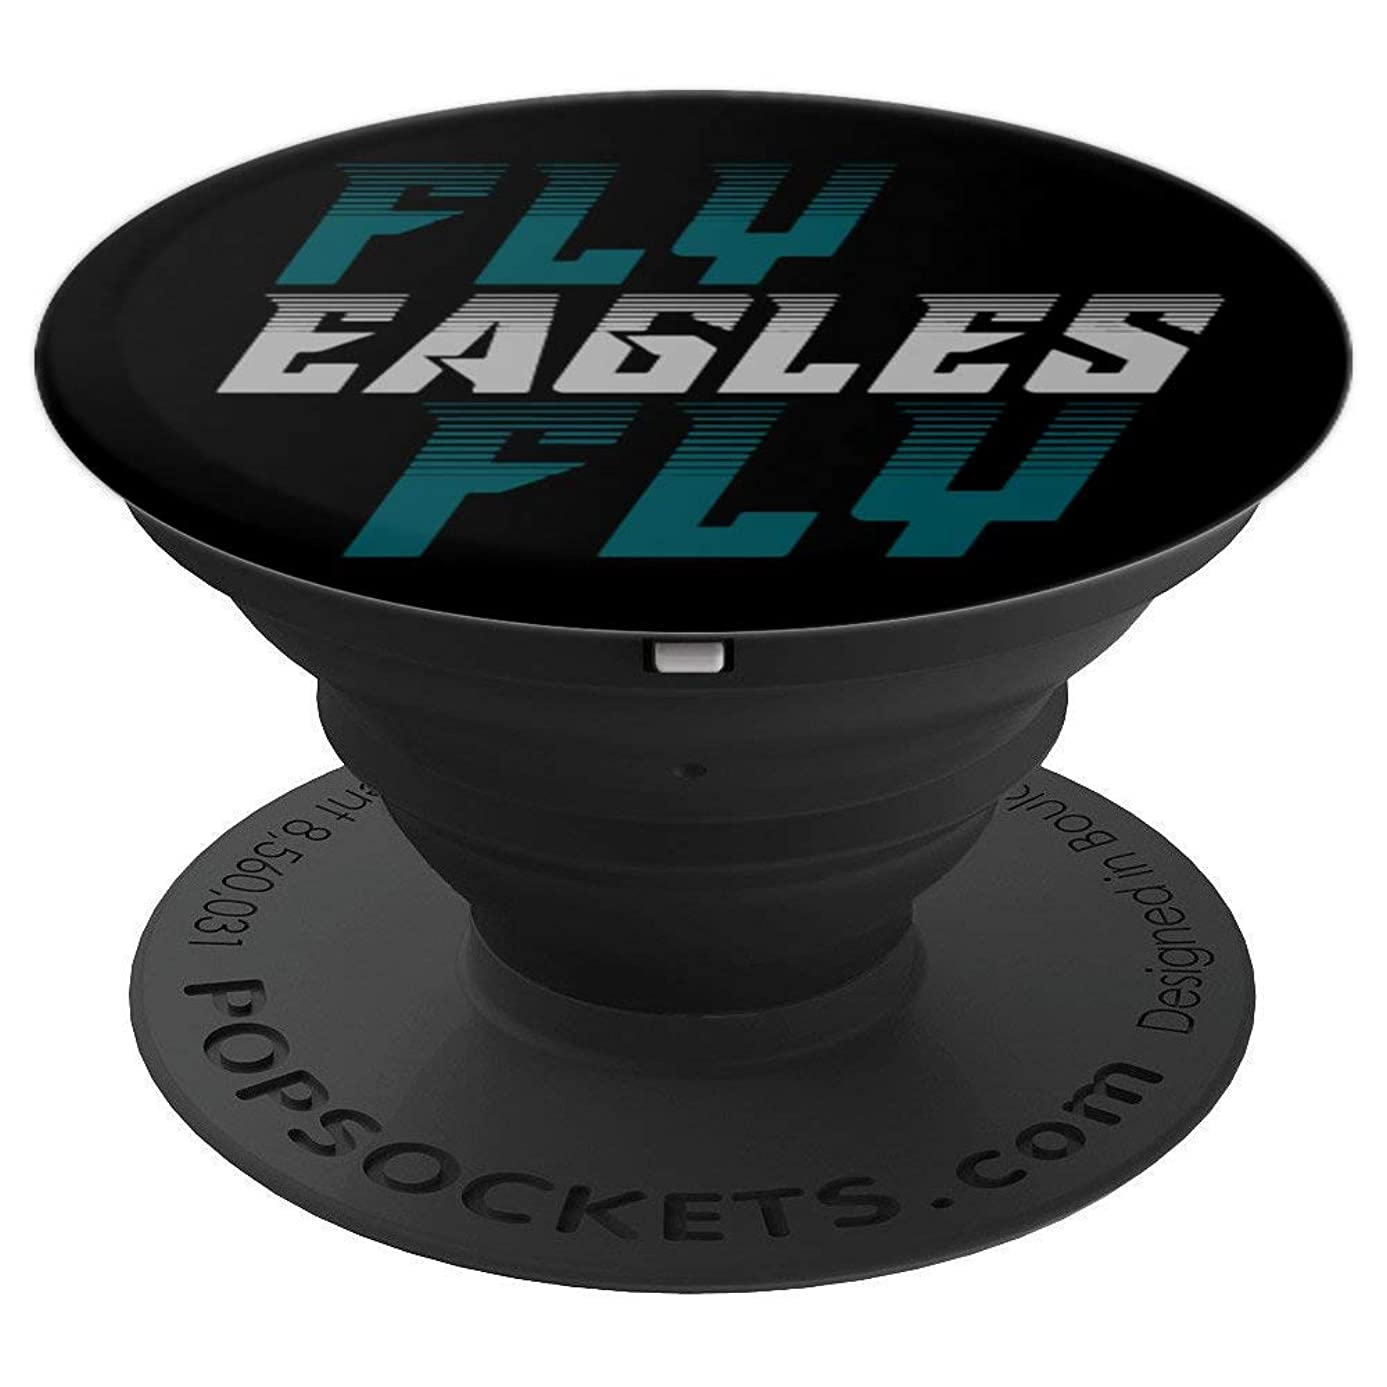 PopSockets: Fly Eagles Fly - PopSockets Grip and Stand for Phones and Tablets